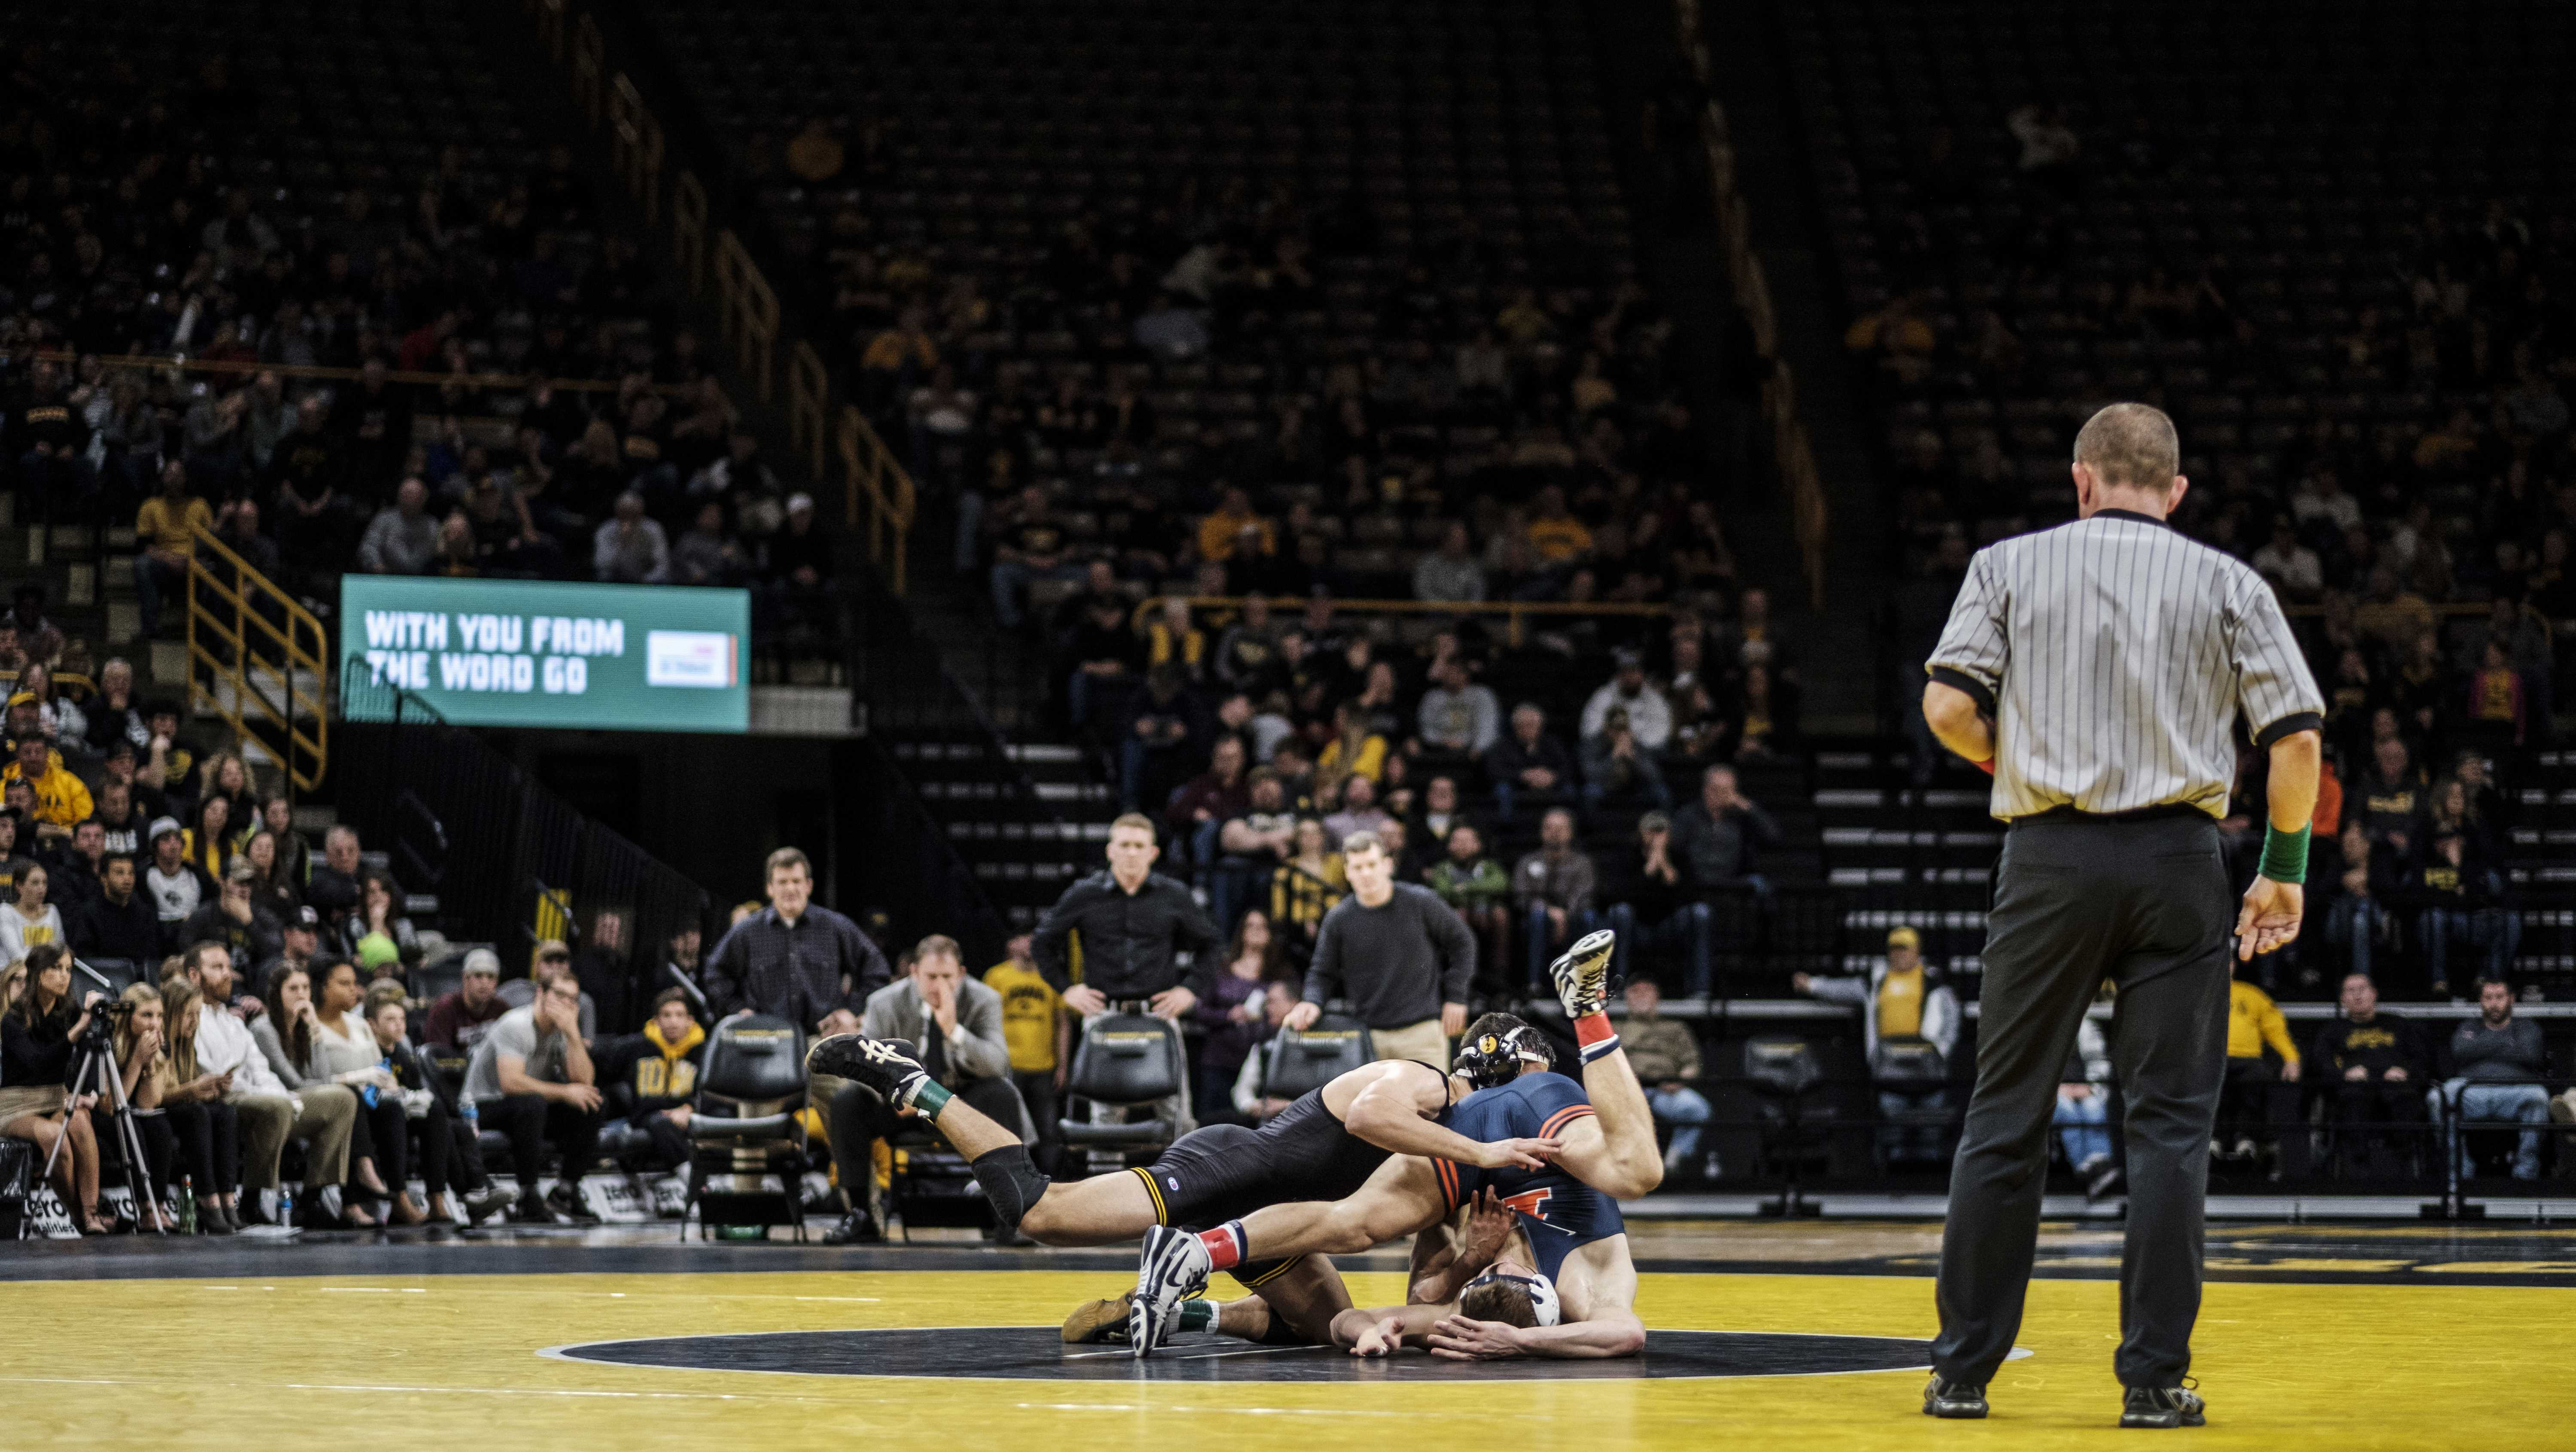 Iowa wrestler Michael Kemerer wrestles against Illinois' Kyle Langenderfer during a meet at Carver Hawkeye Arena on Friday, Dec. 1, 2017. The Hawkeyes defeated the Illini 18-17. (Nick Rohlman/The Daily Iowan)